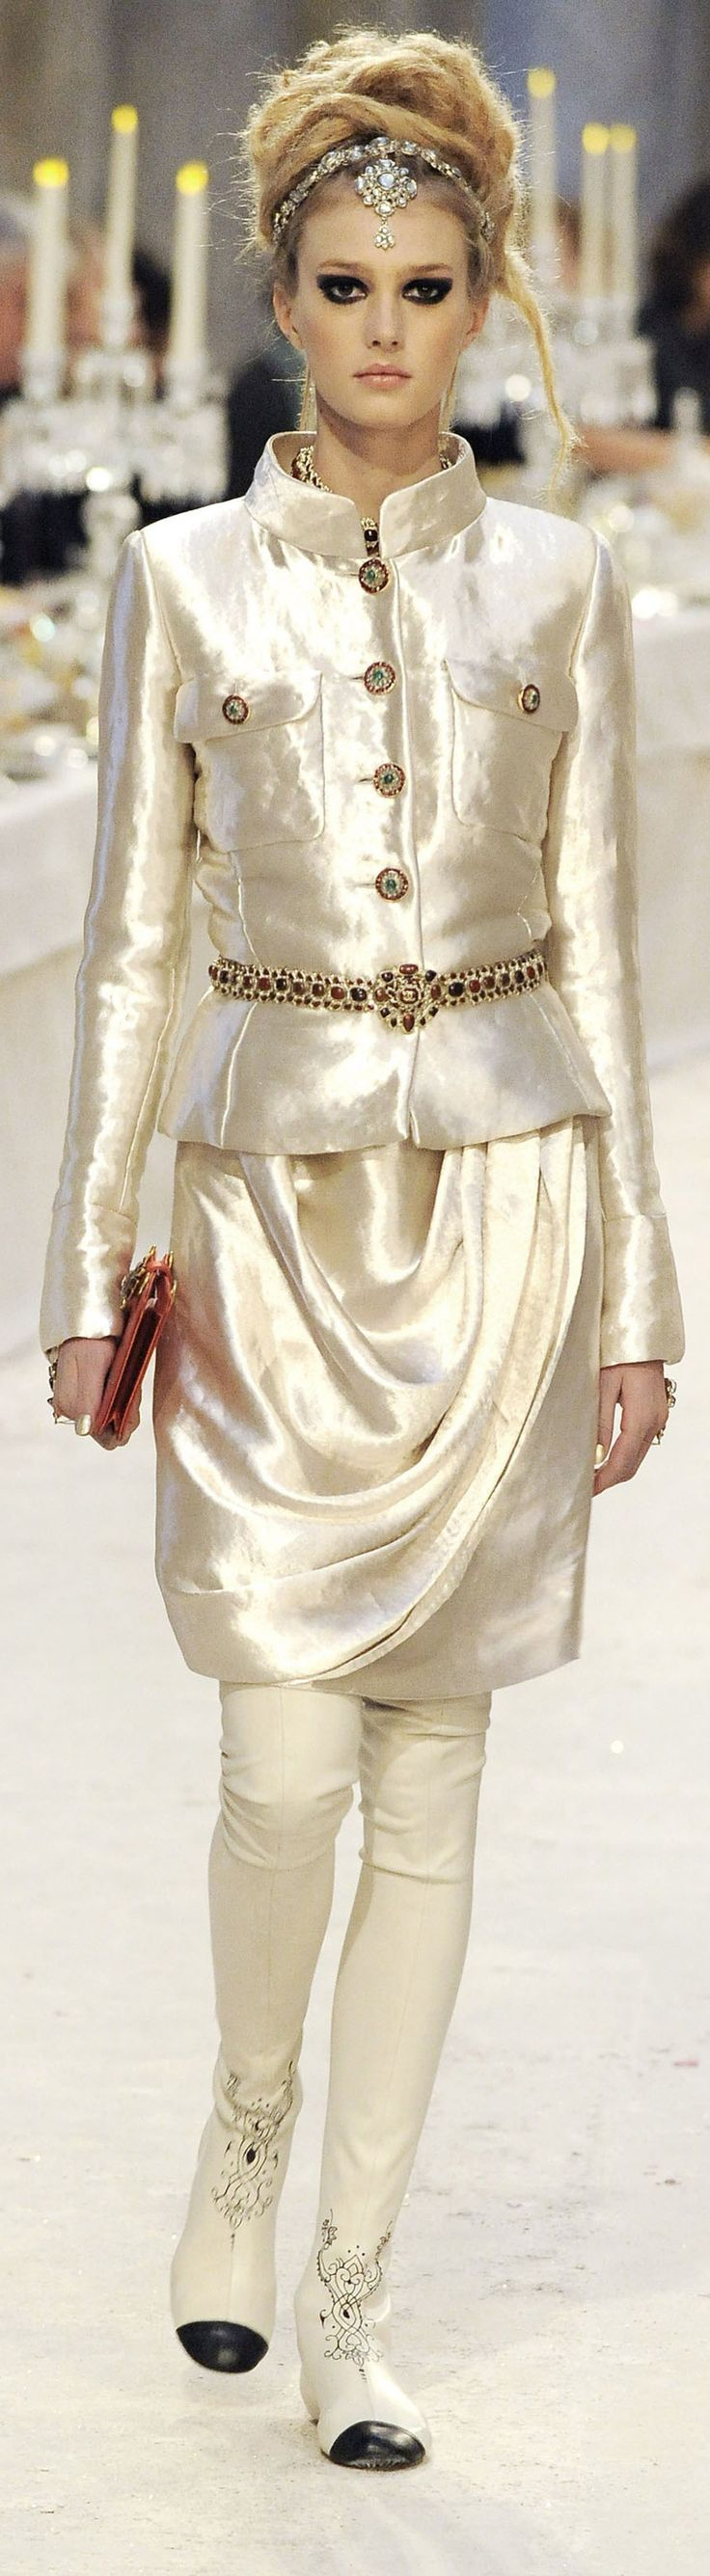 ✪ Gorgeous India Influence in Chanel's Paris-Bombay Pre-Fall 2012 2013 collection ~